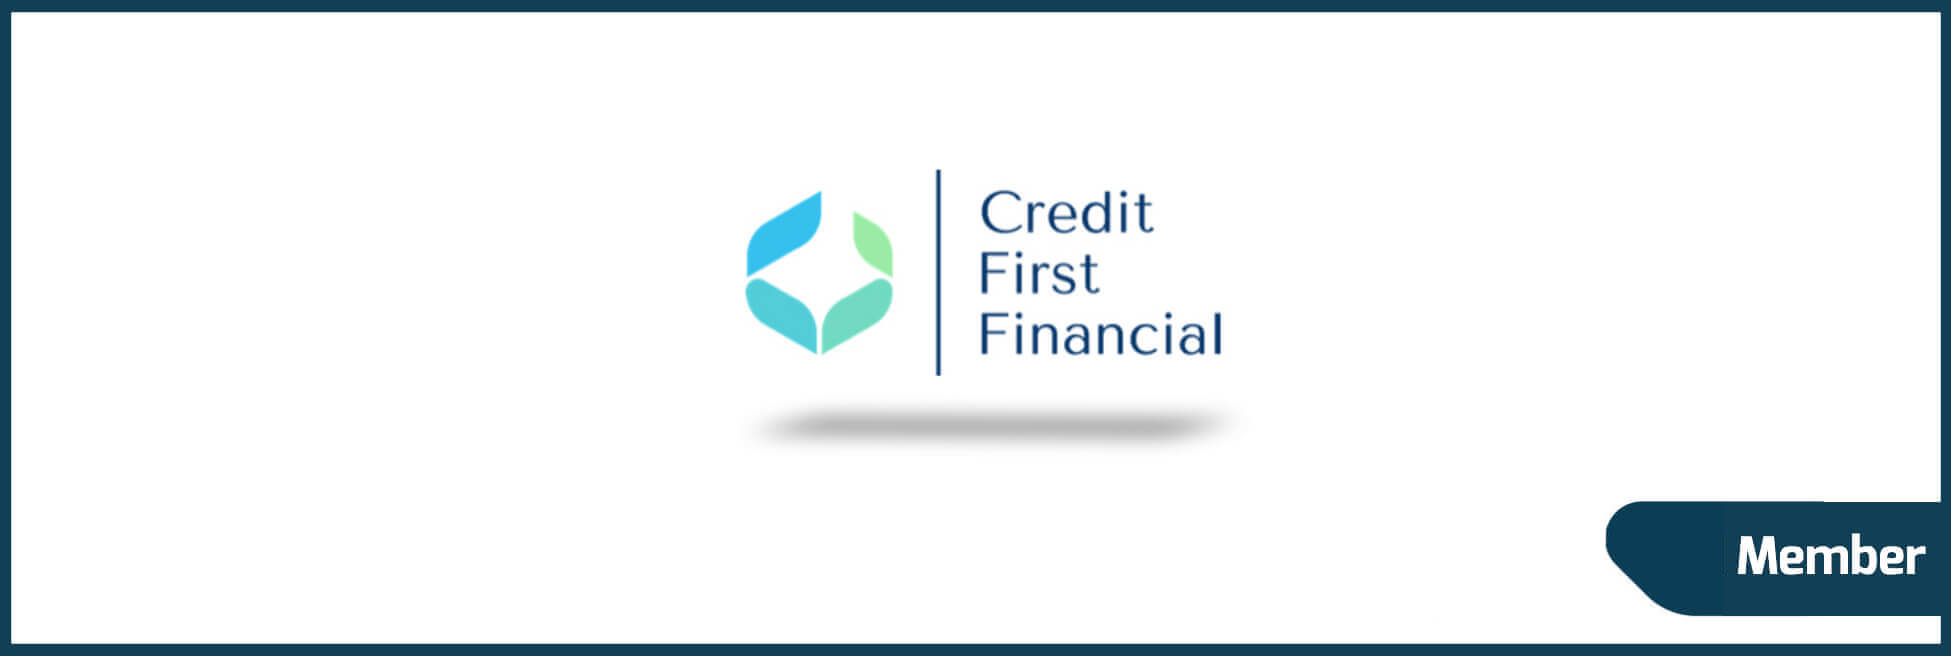 Credit First Financial